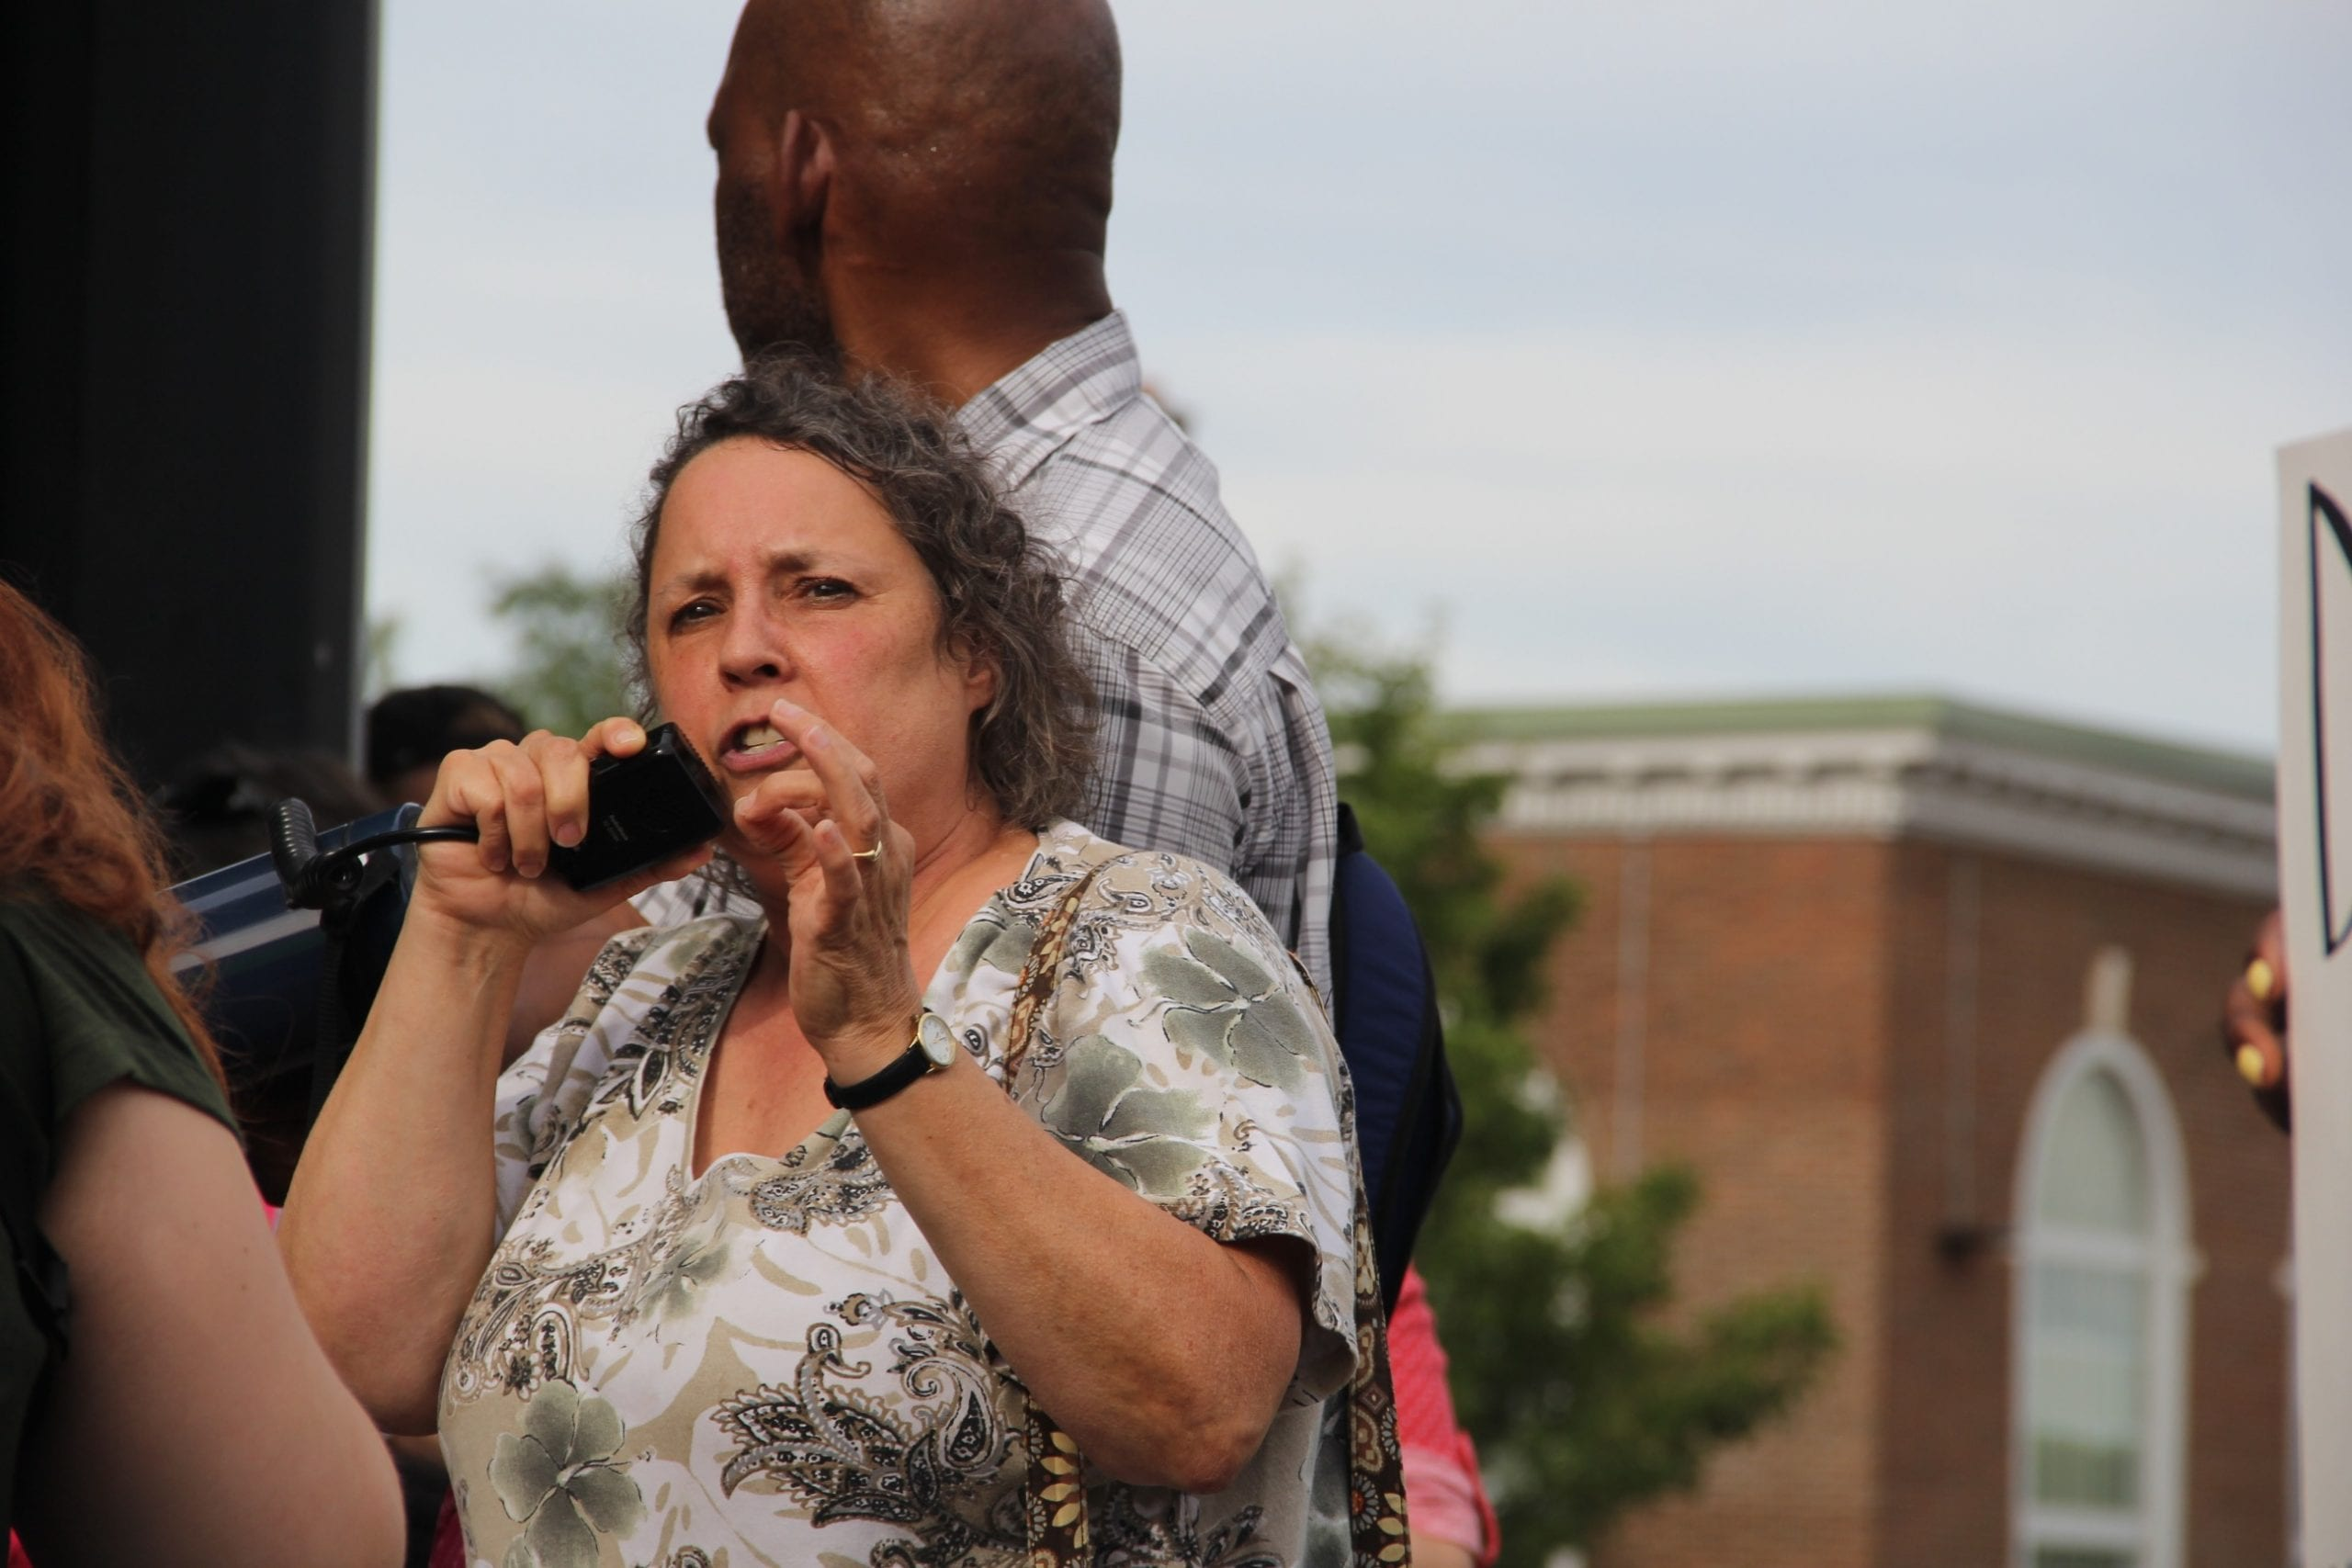 Robin McHaelen spoke during the Black Lives Matter rally in West Hartford. Photo credit: Amy B. Melvin